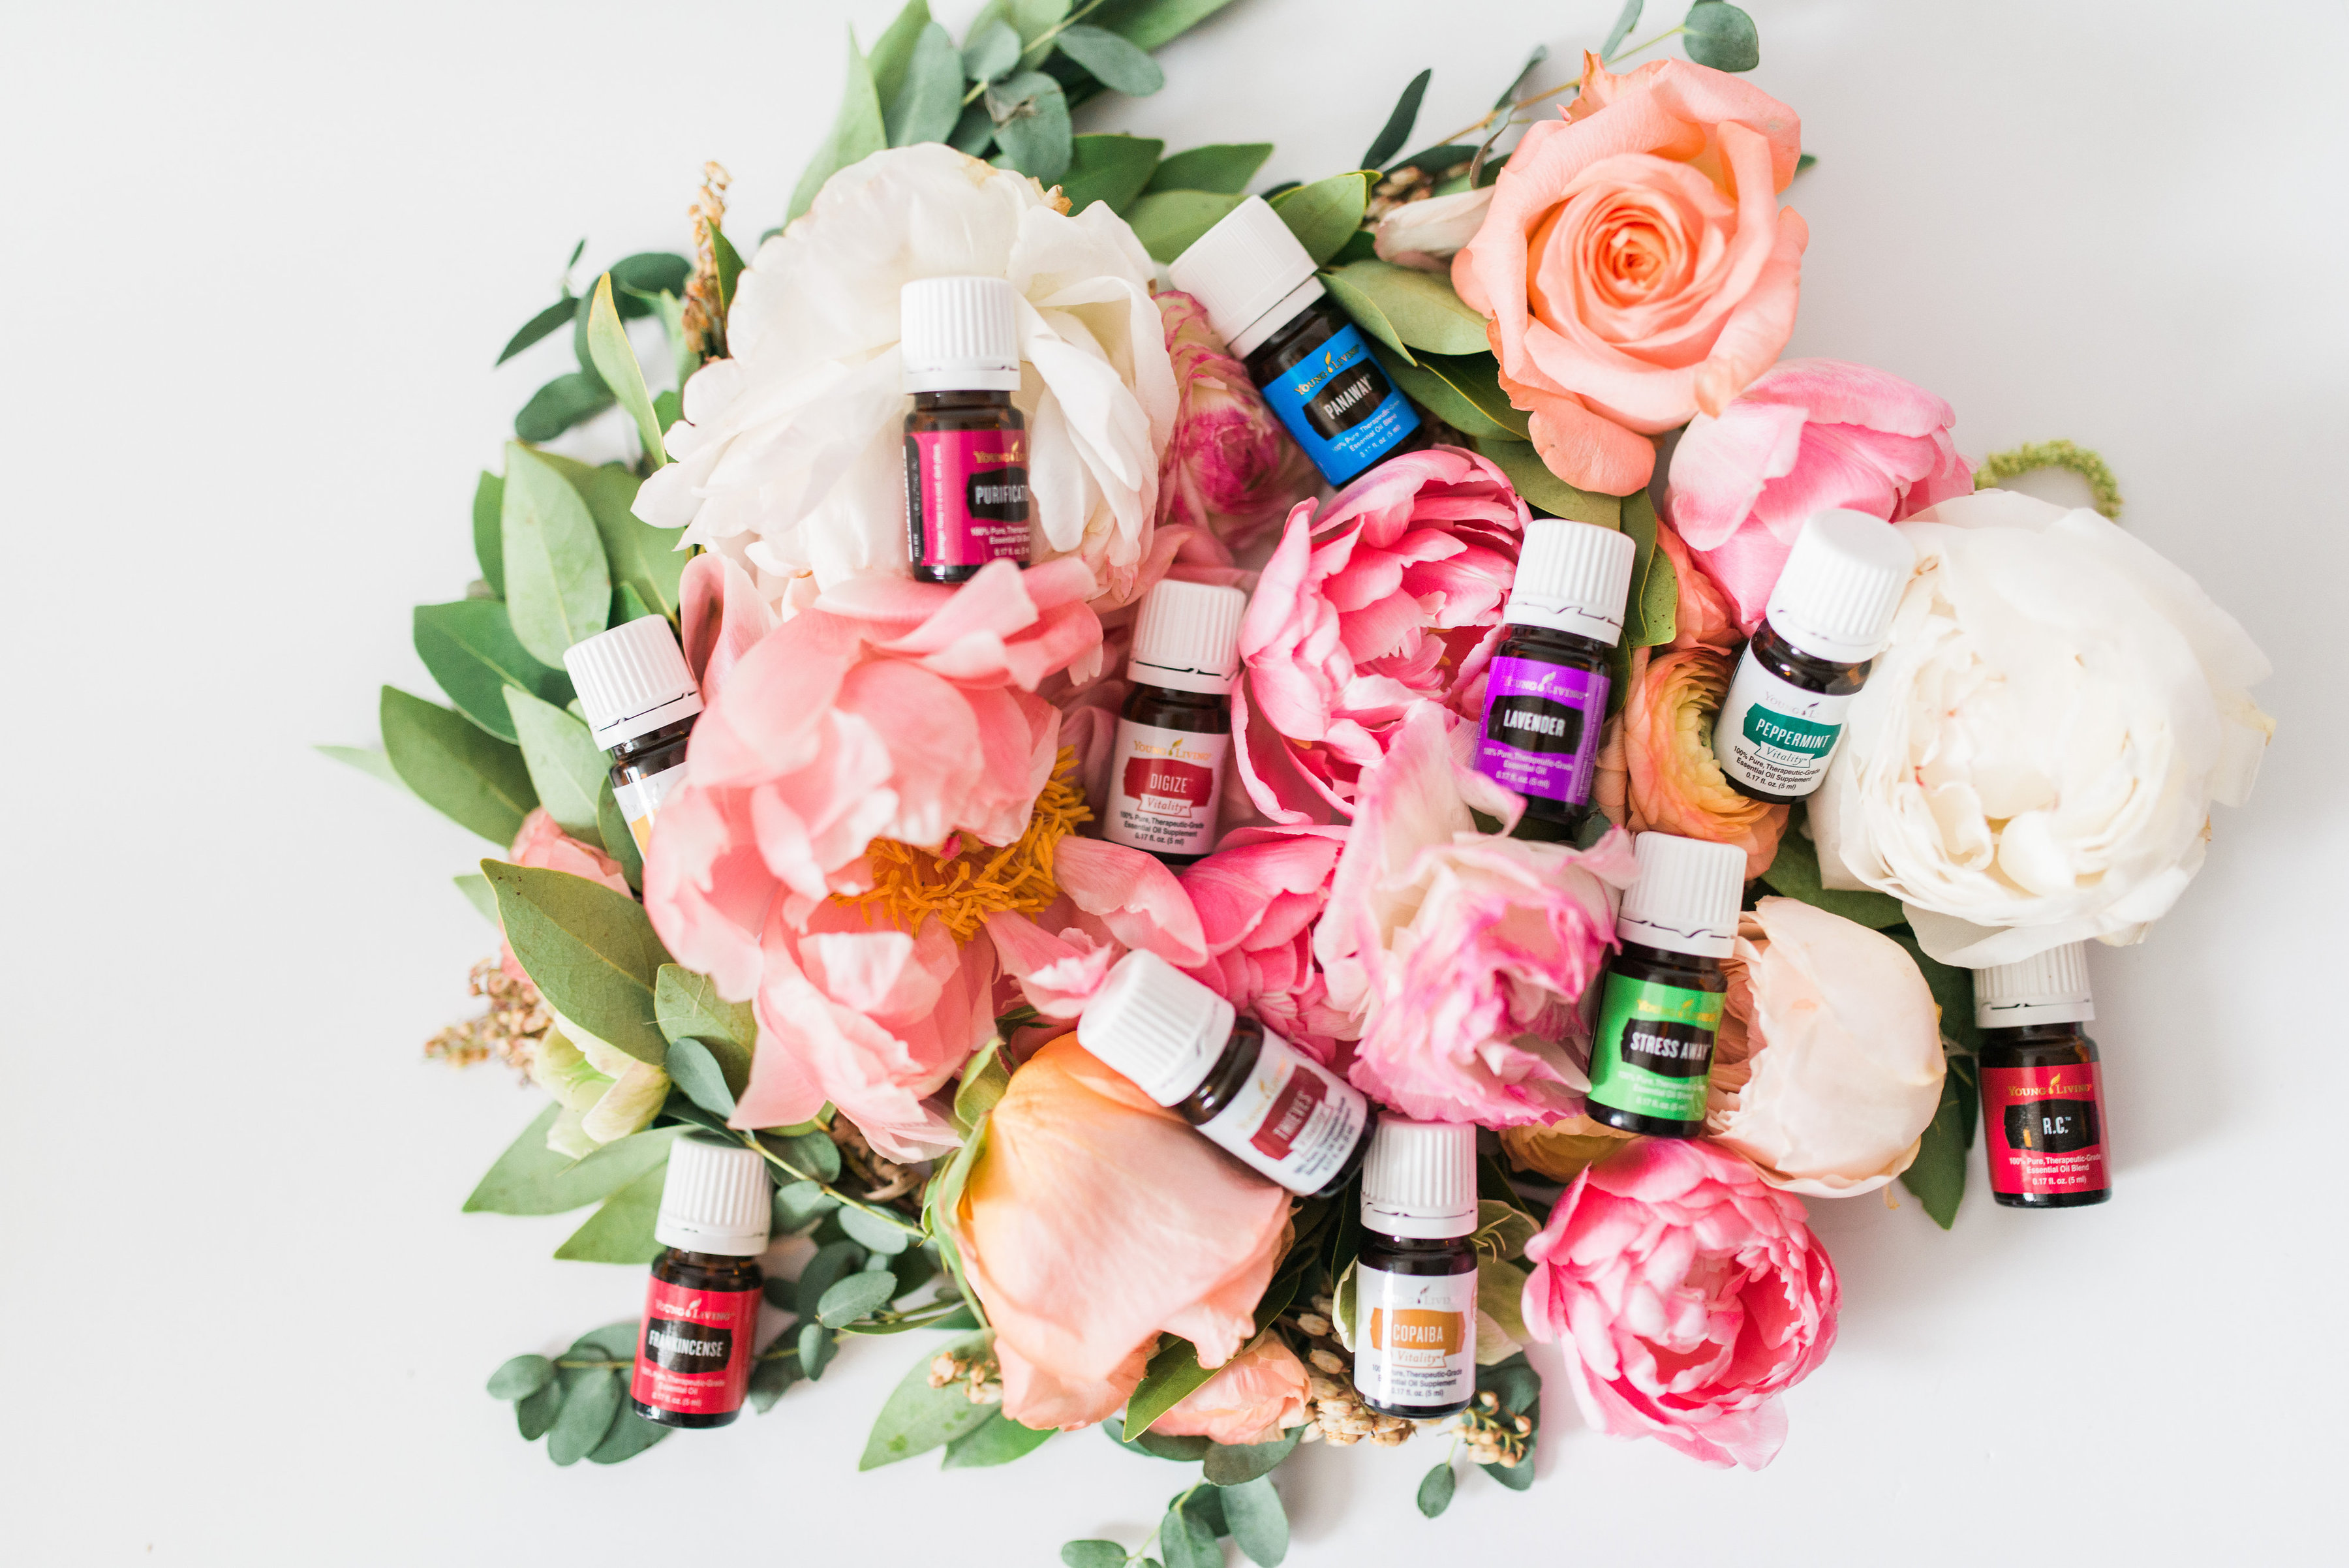 How to Start with Essential Oils